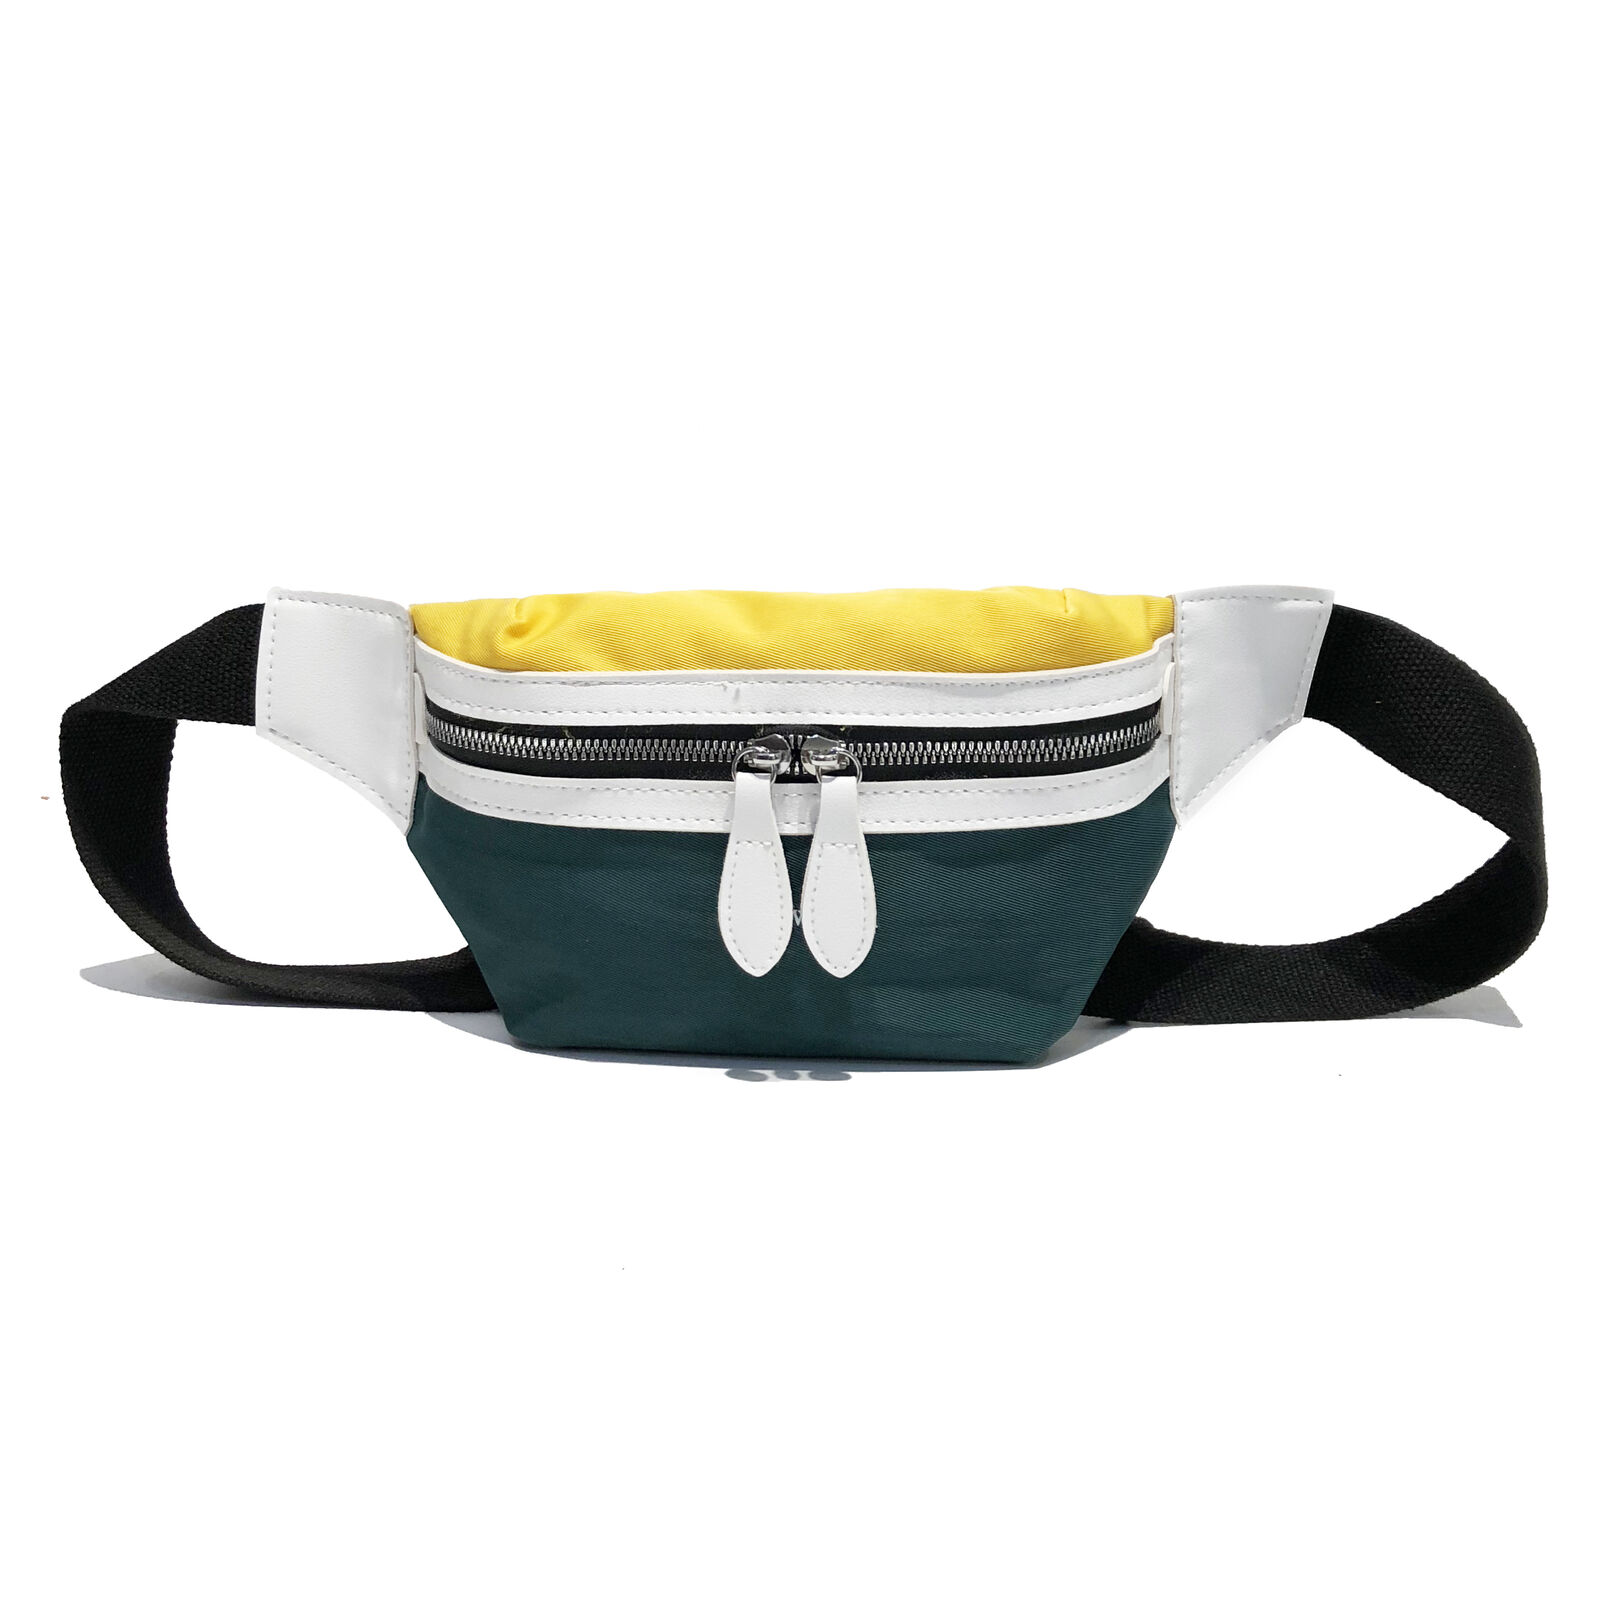 New College Wind Waist Bag Female Fanny Pack Fashion Contrast Color Heuptas Chest Bag